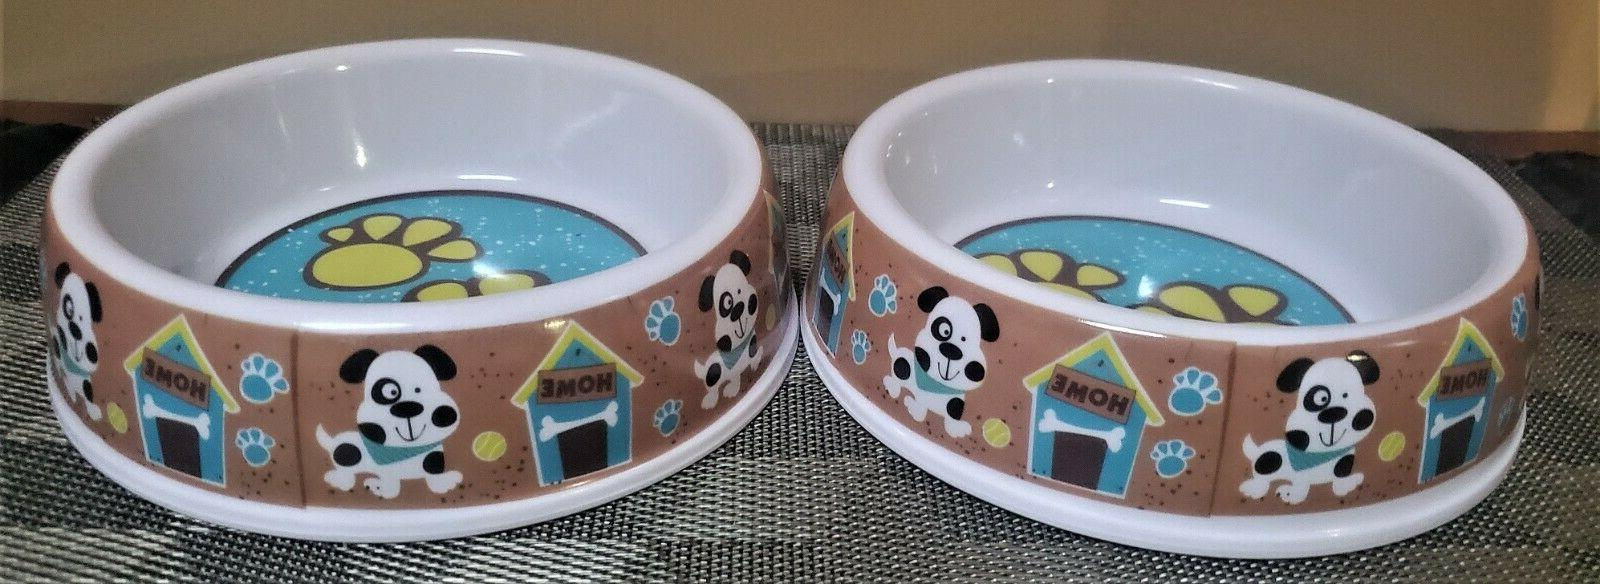 decorative dog bowls for food and water